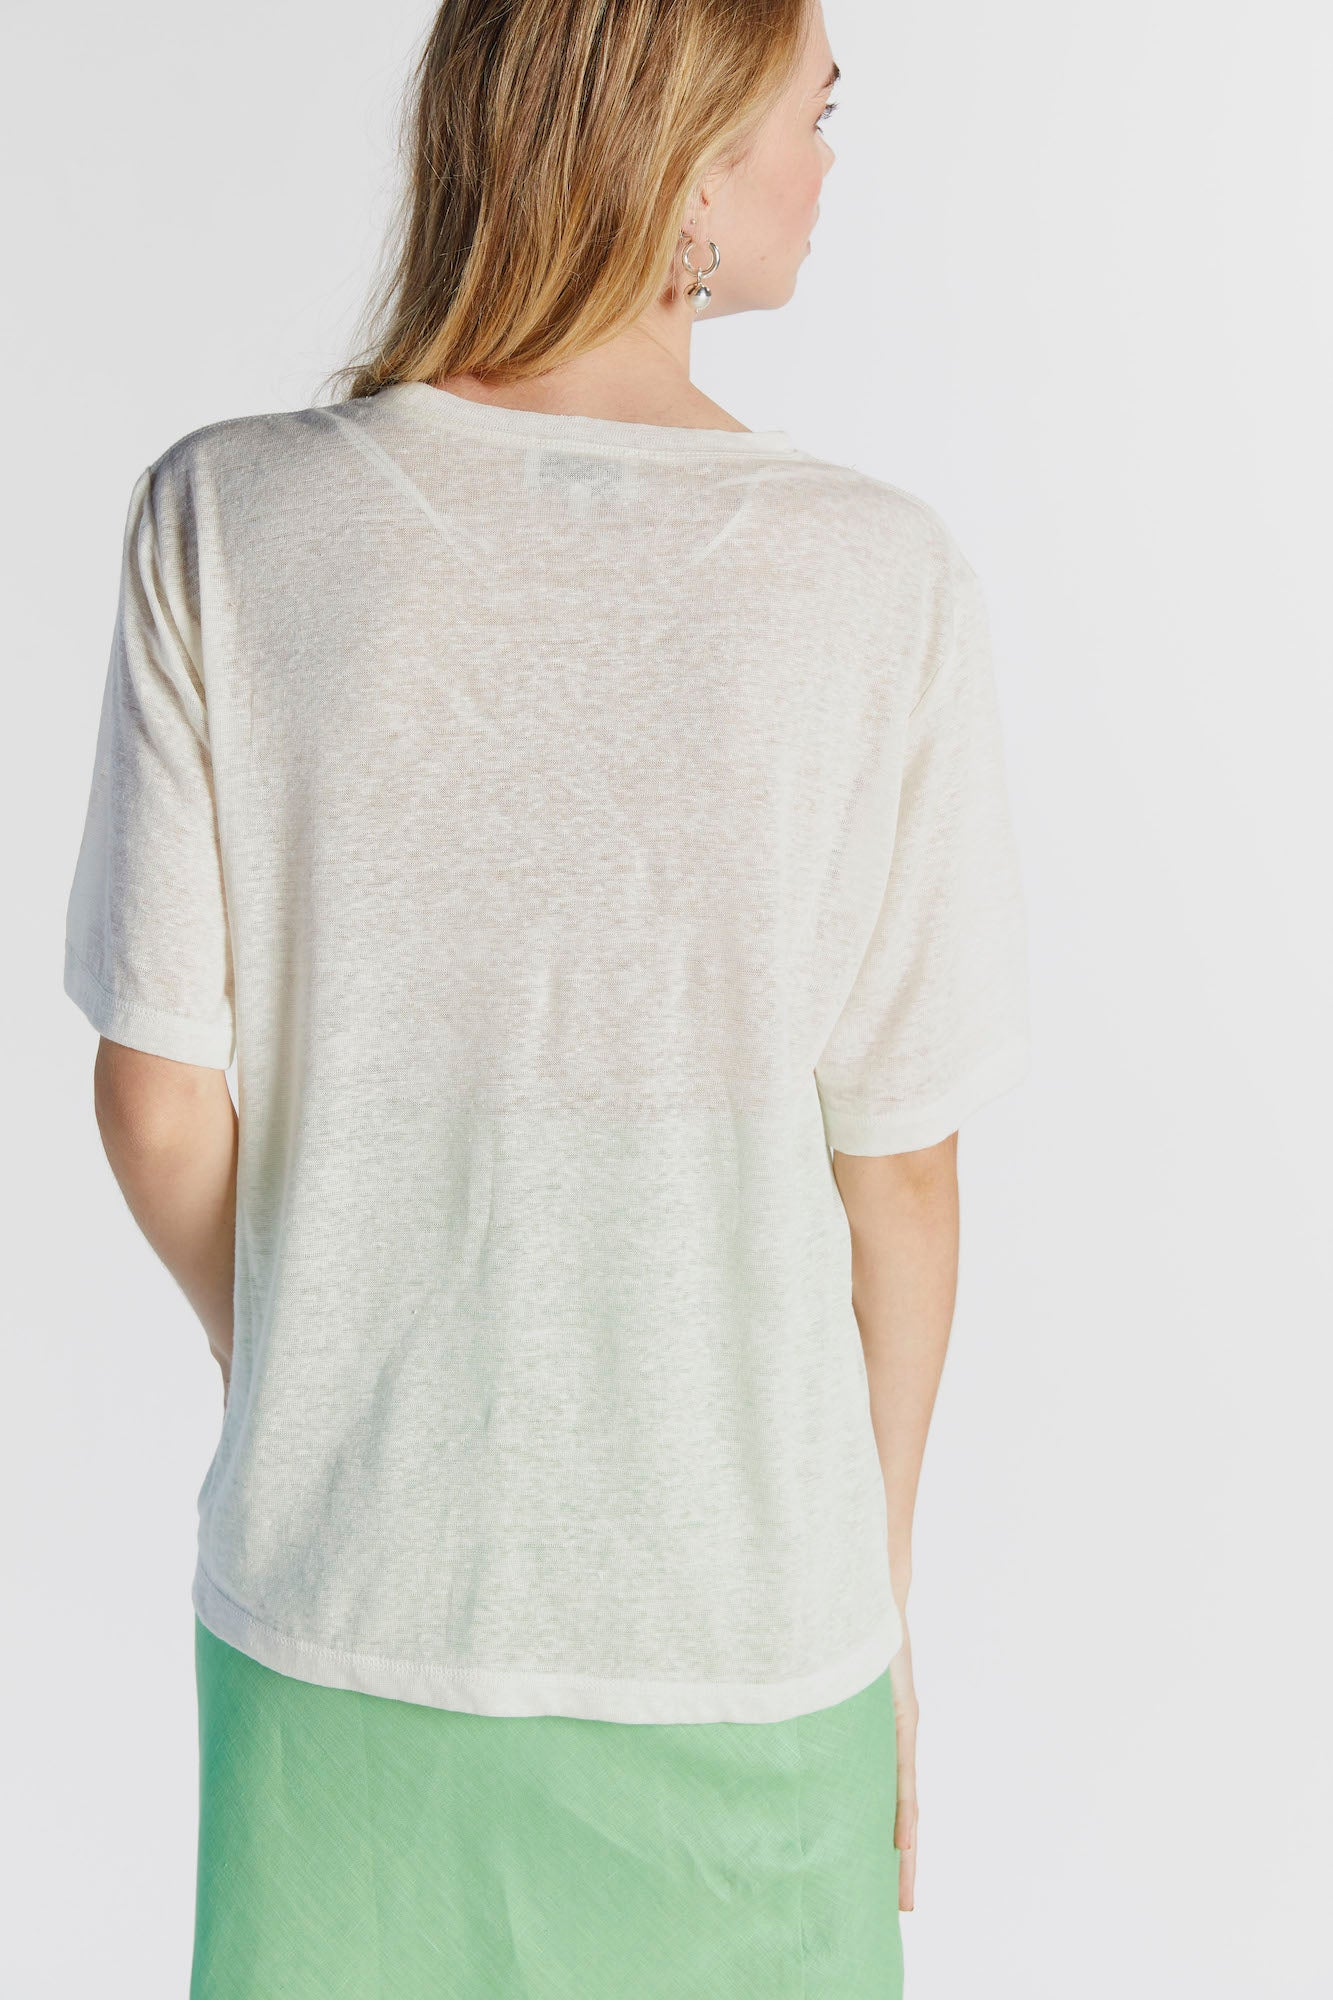 The Griffin Tee in Cream - hej hej